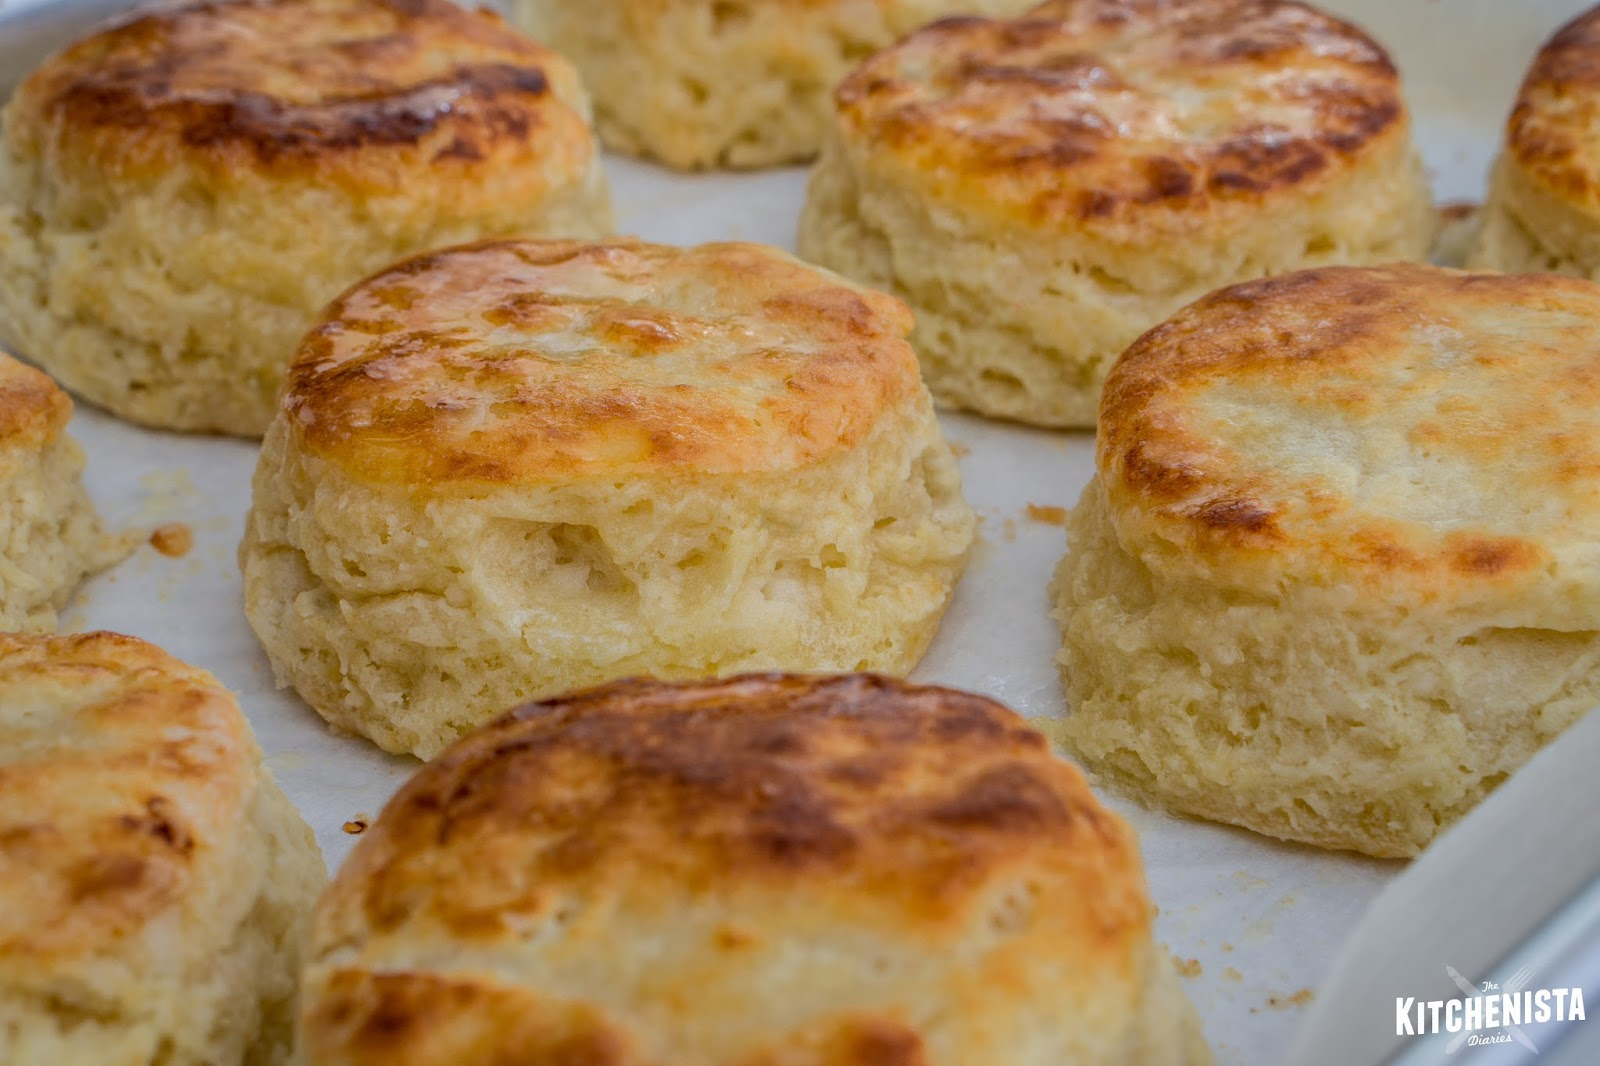 How To Make Better Buttermilk Biscuits The Kitchenista Diaries